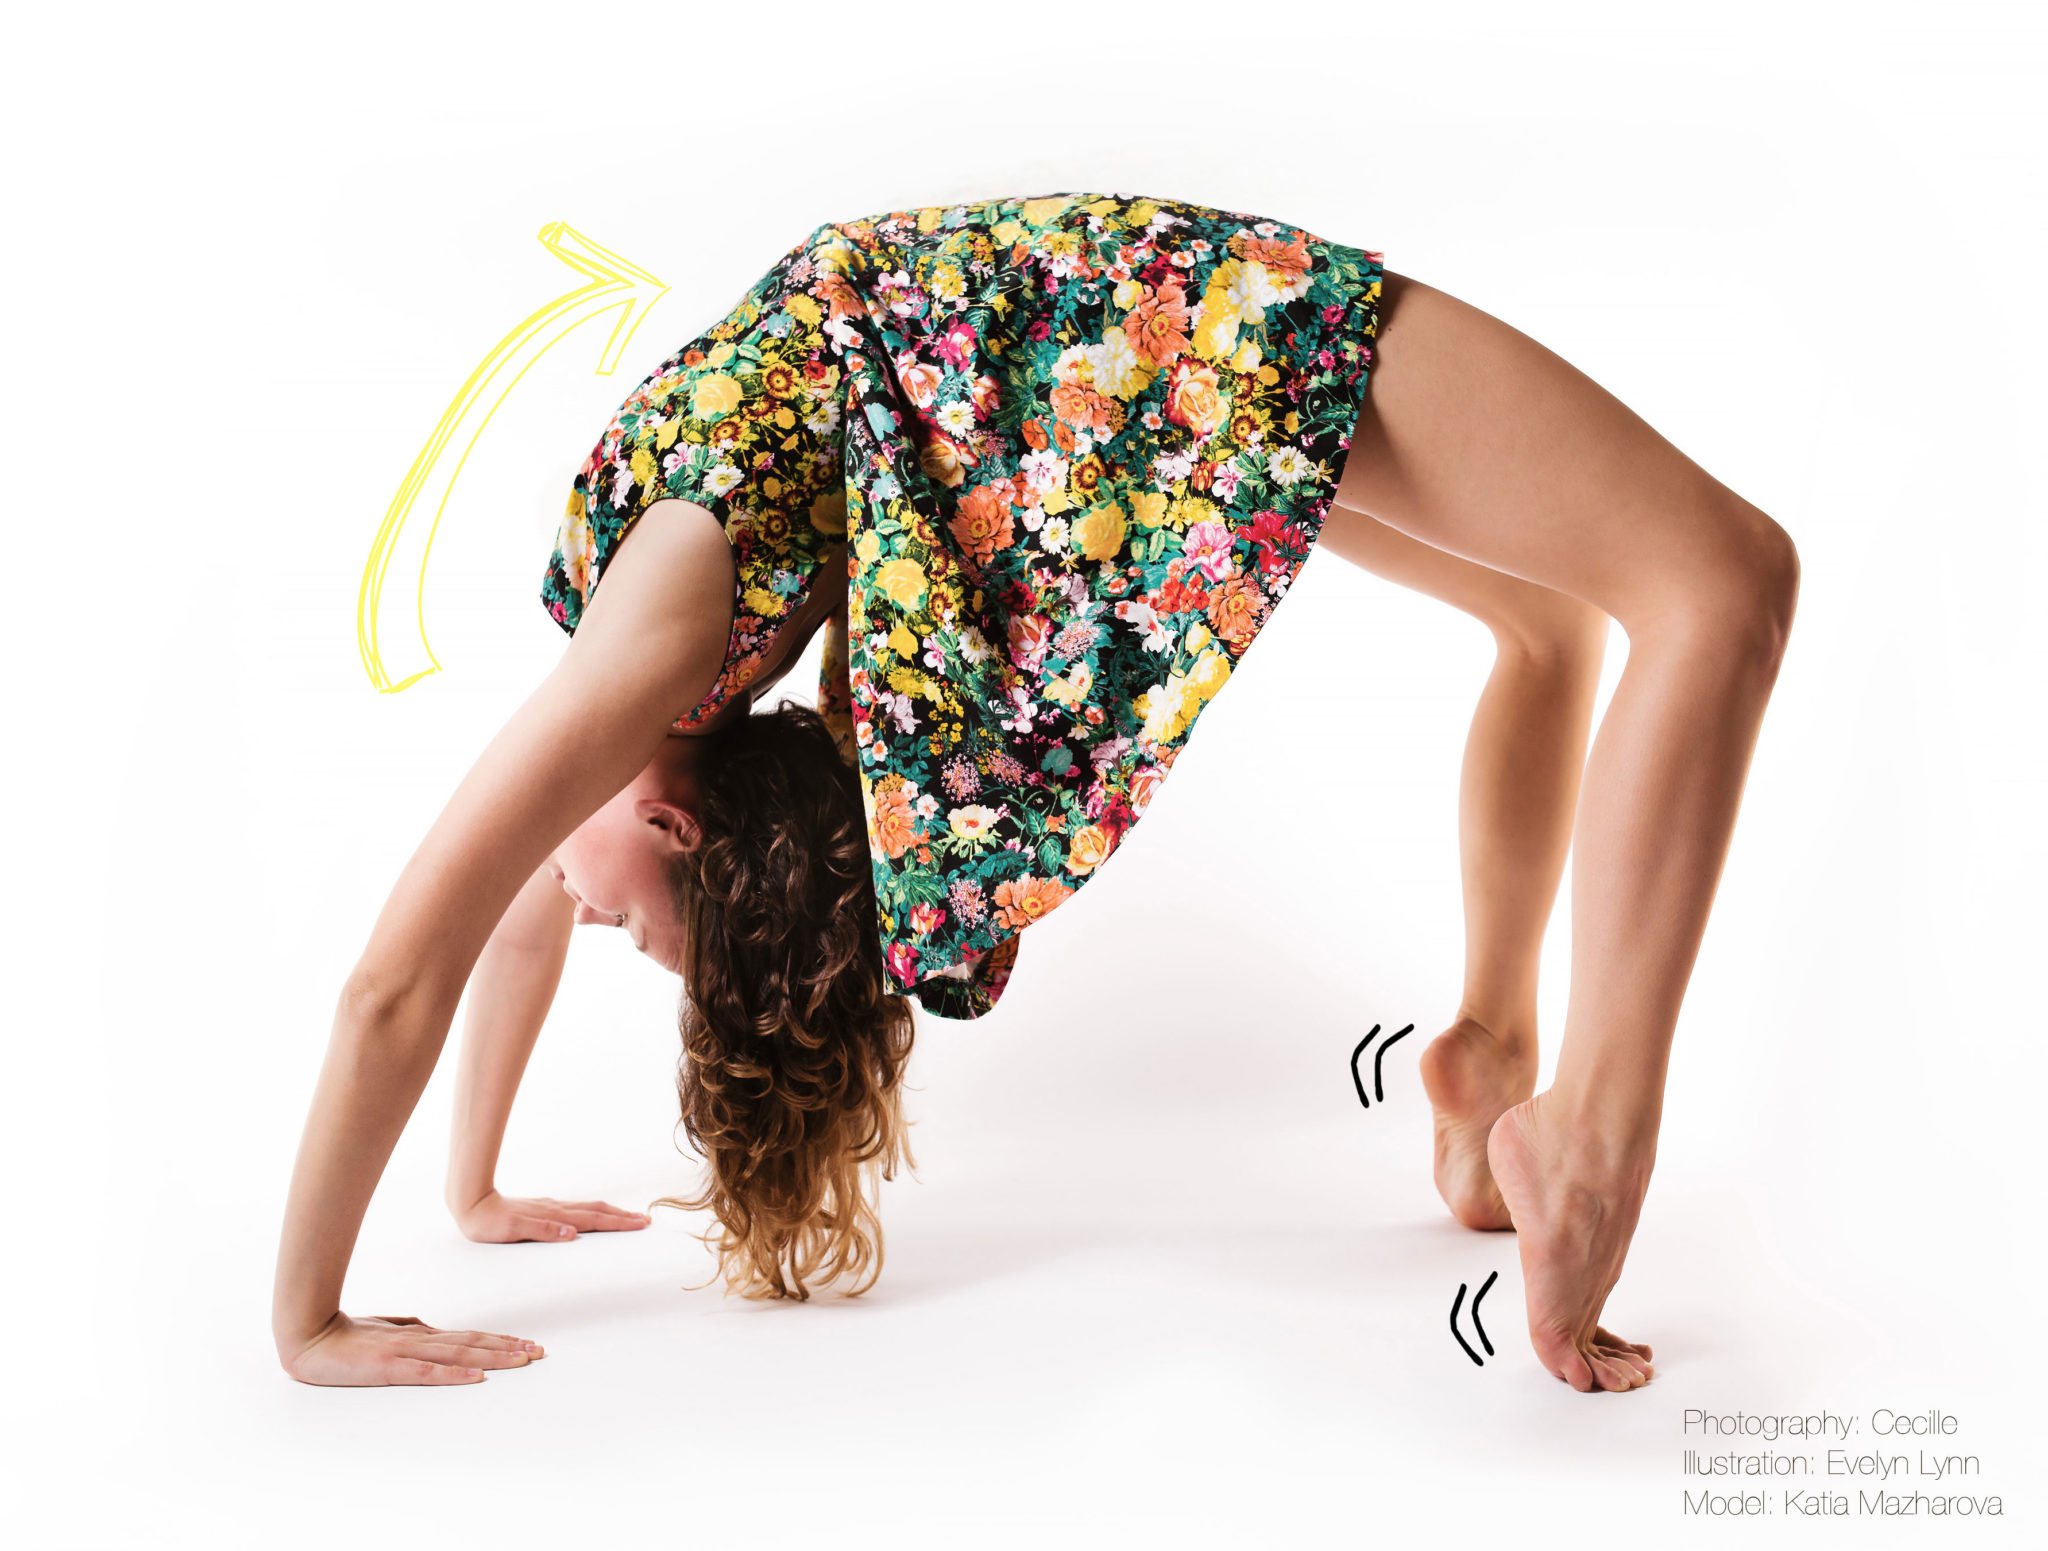 Yoga Photography & Illustration